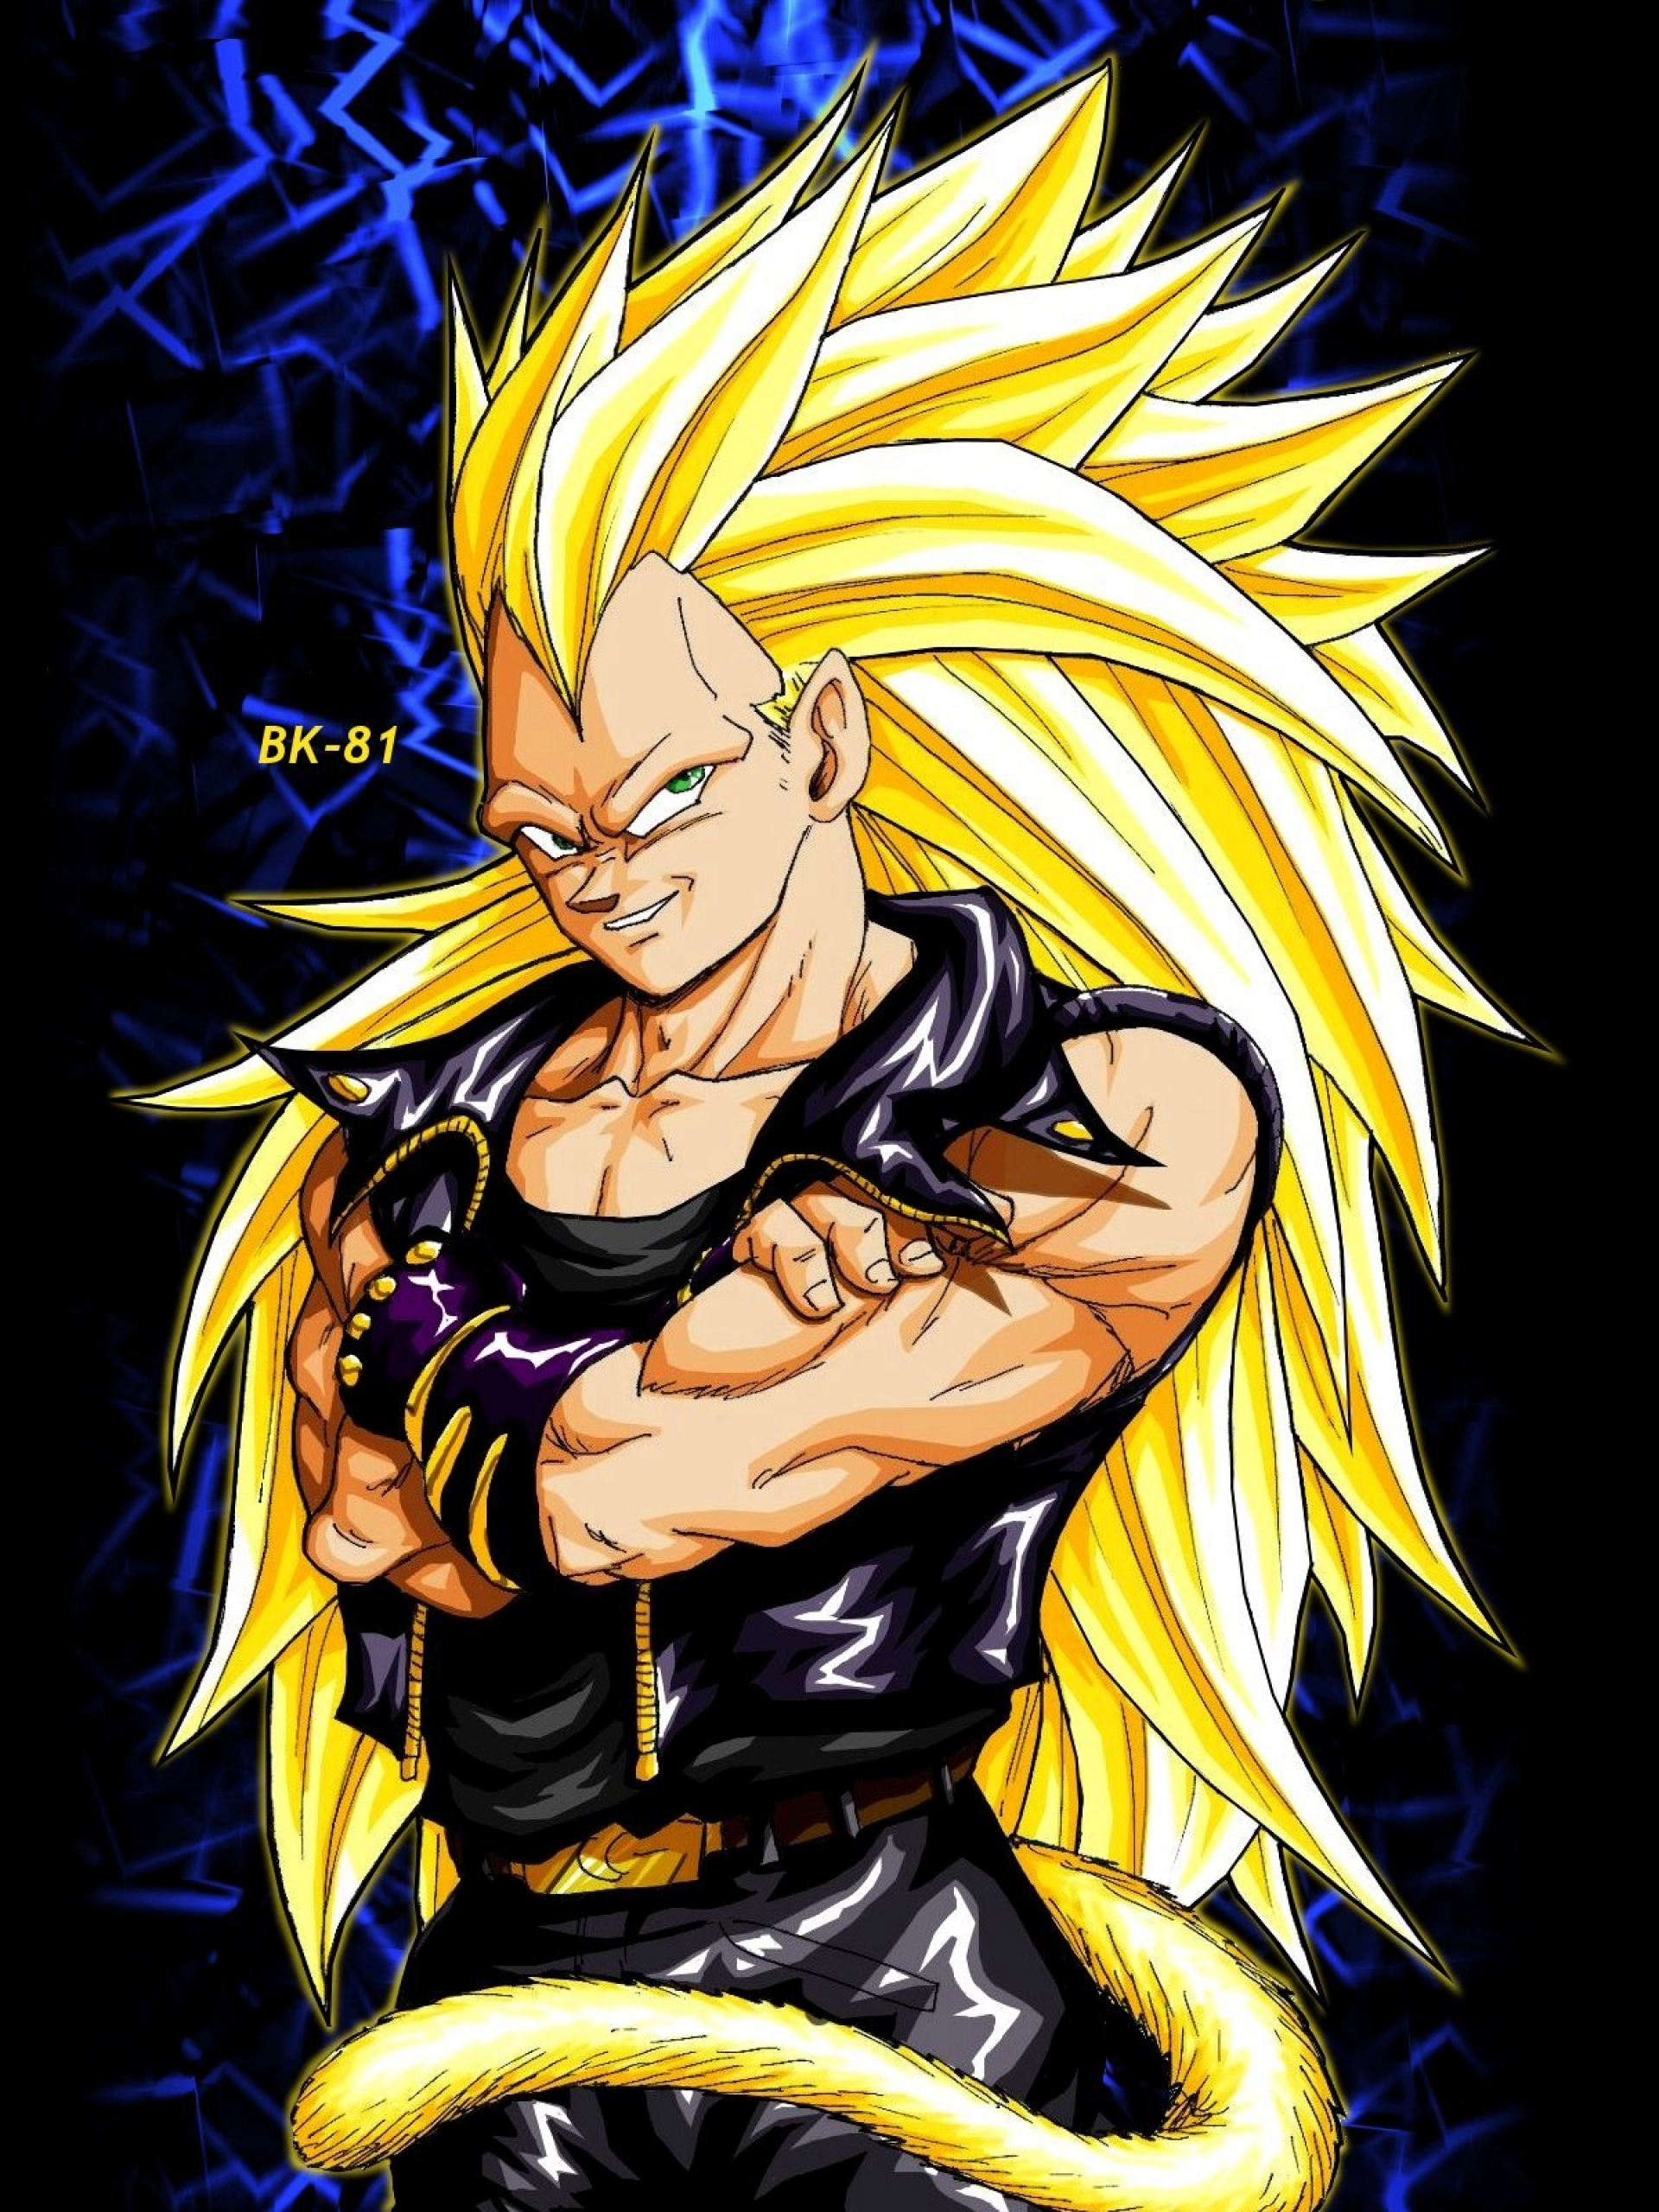 New super saiyan ultra dragon ball wiki fandom powered - Goku 5 super saiyan ...